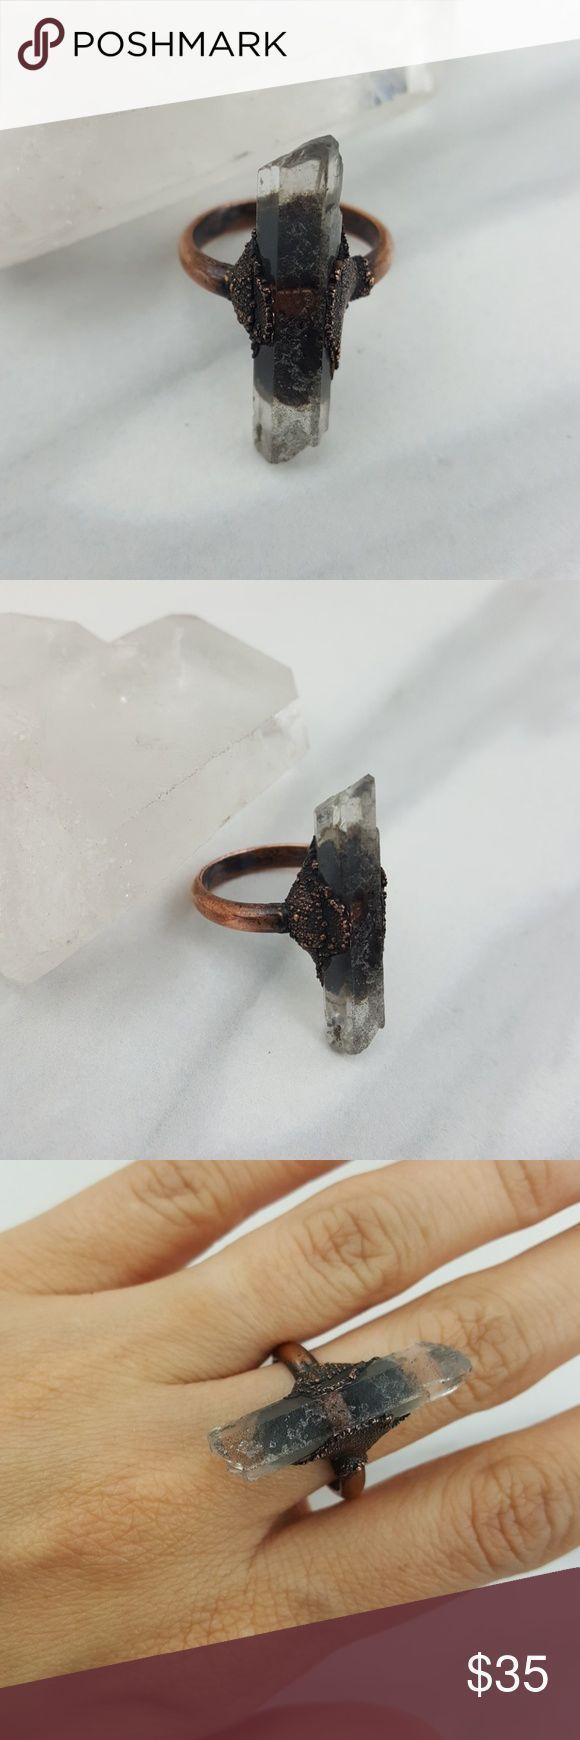 Karma • Lemurian Smoky Quartz Copper Ring LEMURIAN SMOKY QUARTZ: Karmic Cleans...,  #Cleans #... #smokyquartz Karma • Lemurian Smoky Quartz Copper Ring LEMURIAN SMOKY QUARTZ: Karmic Cleans...,  #Cleans #Copper #Electroformedjewelryrings #Karma #Karmic #Lemurian #Quartz #ring #Smoky #smokyquartz Karma • Lemurian Smoky Quartz Copper Ring LEMURIAN SMOKY QUARTZ: Karmic Cleans...,  #Cleans #... #smokyquartz Karma • Lemurian Smoky Quartz Copper Ring LEMURIAN SMOKY QUARTZ: Karmic Cleans...,  #C #smokyquartz